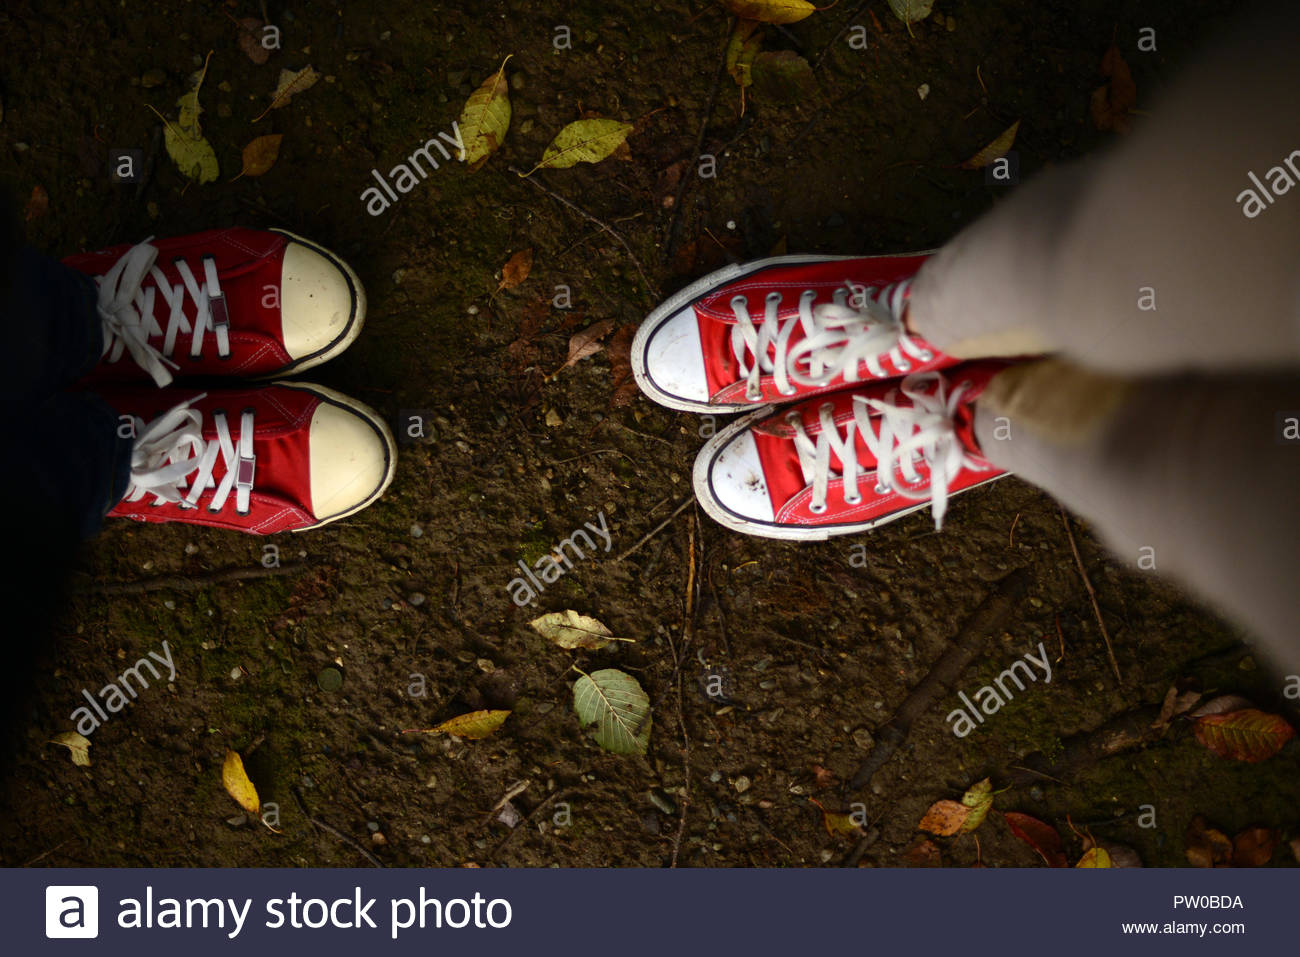 7ba0333d8 two girls wearing red canvas shoes standing on a ground with fallen autumn  leaves - Stock